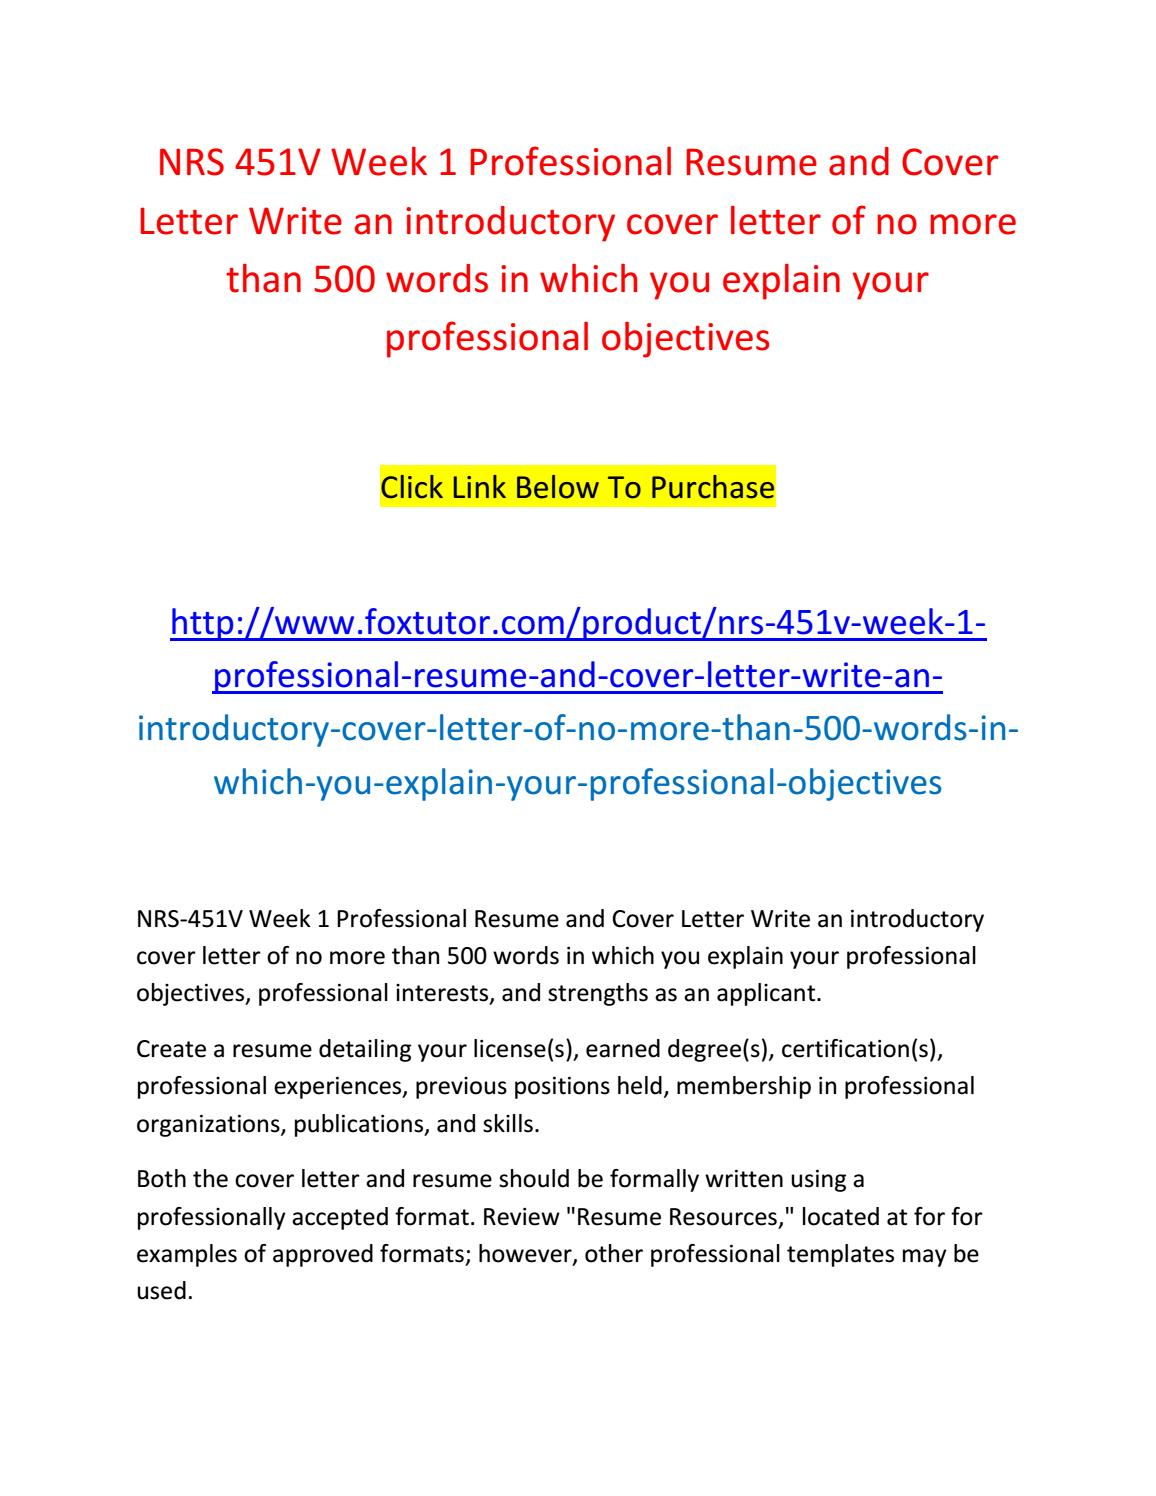 nrs 451v professional resume and cover letter Nrs 451v gc week 1 professional resume and cover letter $ 2500 add to cart discuss how a nurse approaches a discuss one real-life criminal case/discuss.